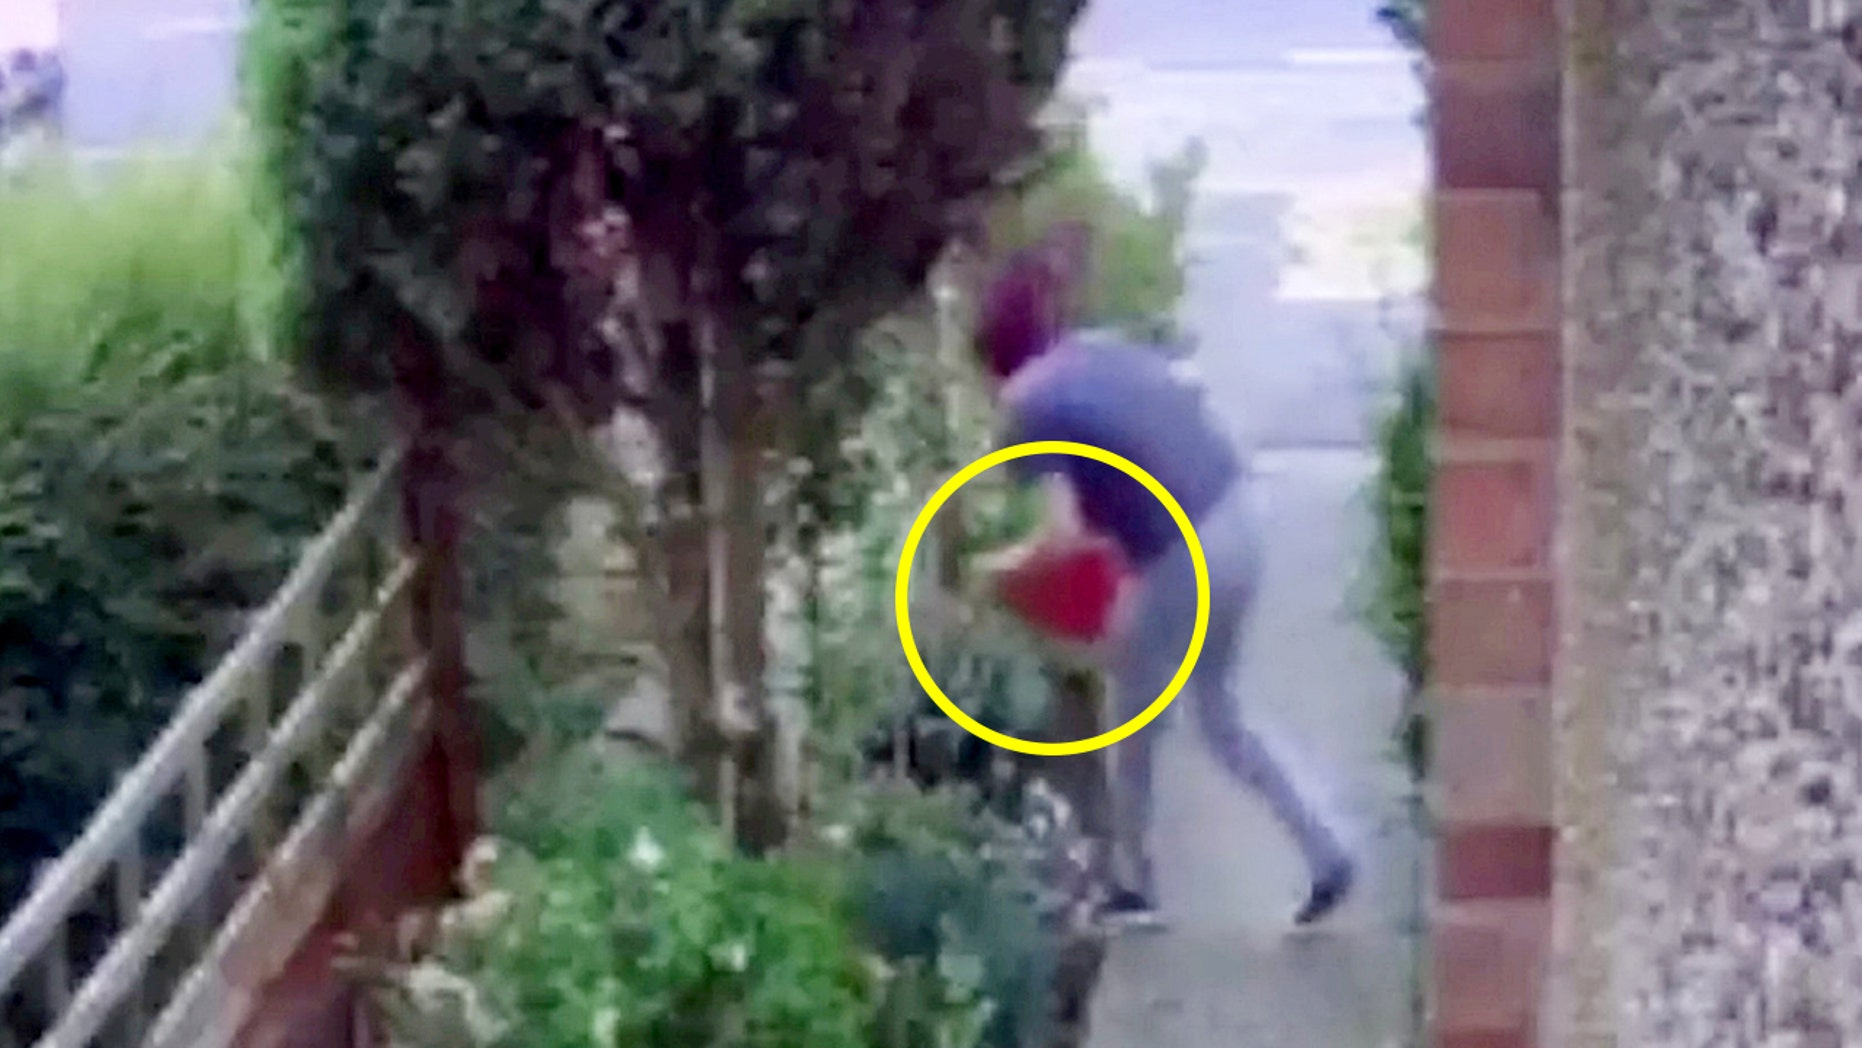 A thief was caught on camera doing a face plant while trying to steal a garden gnome.